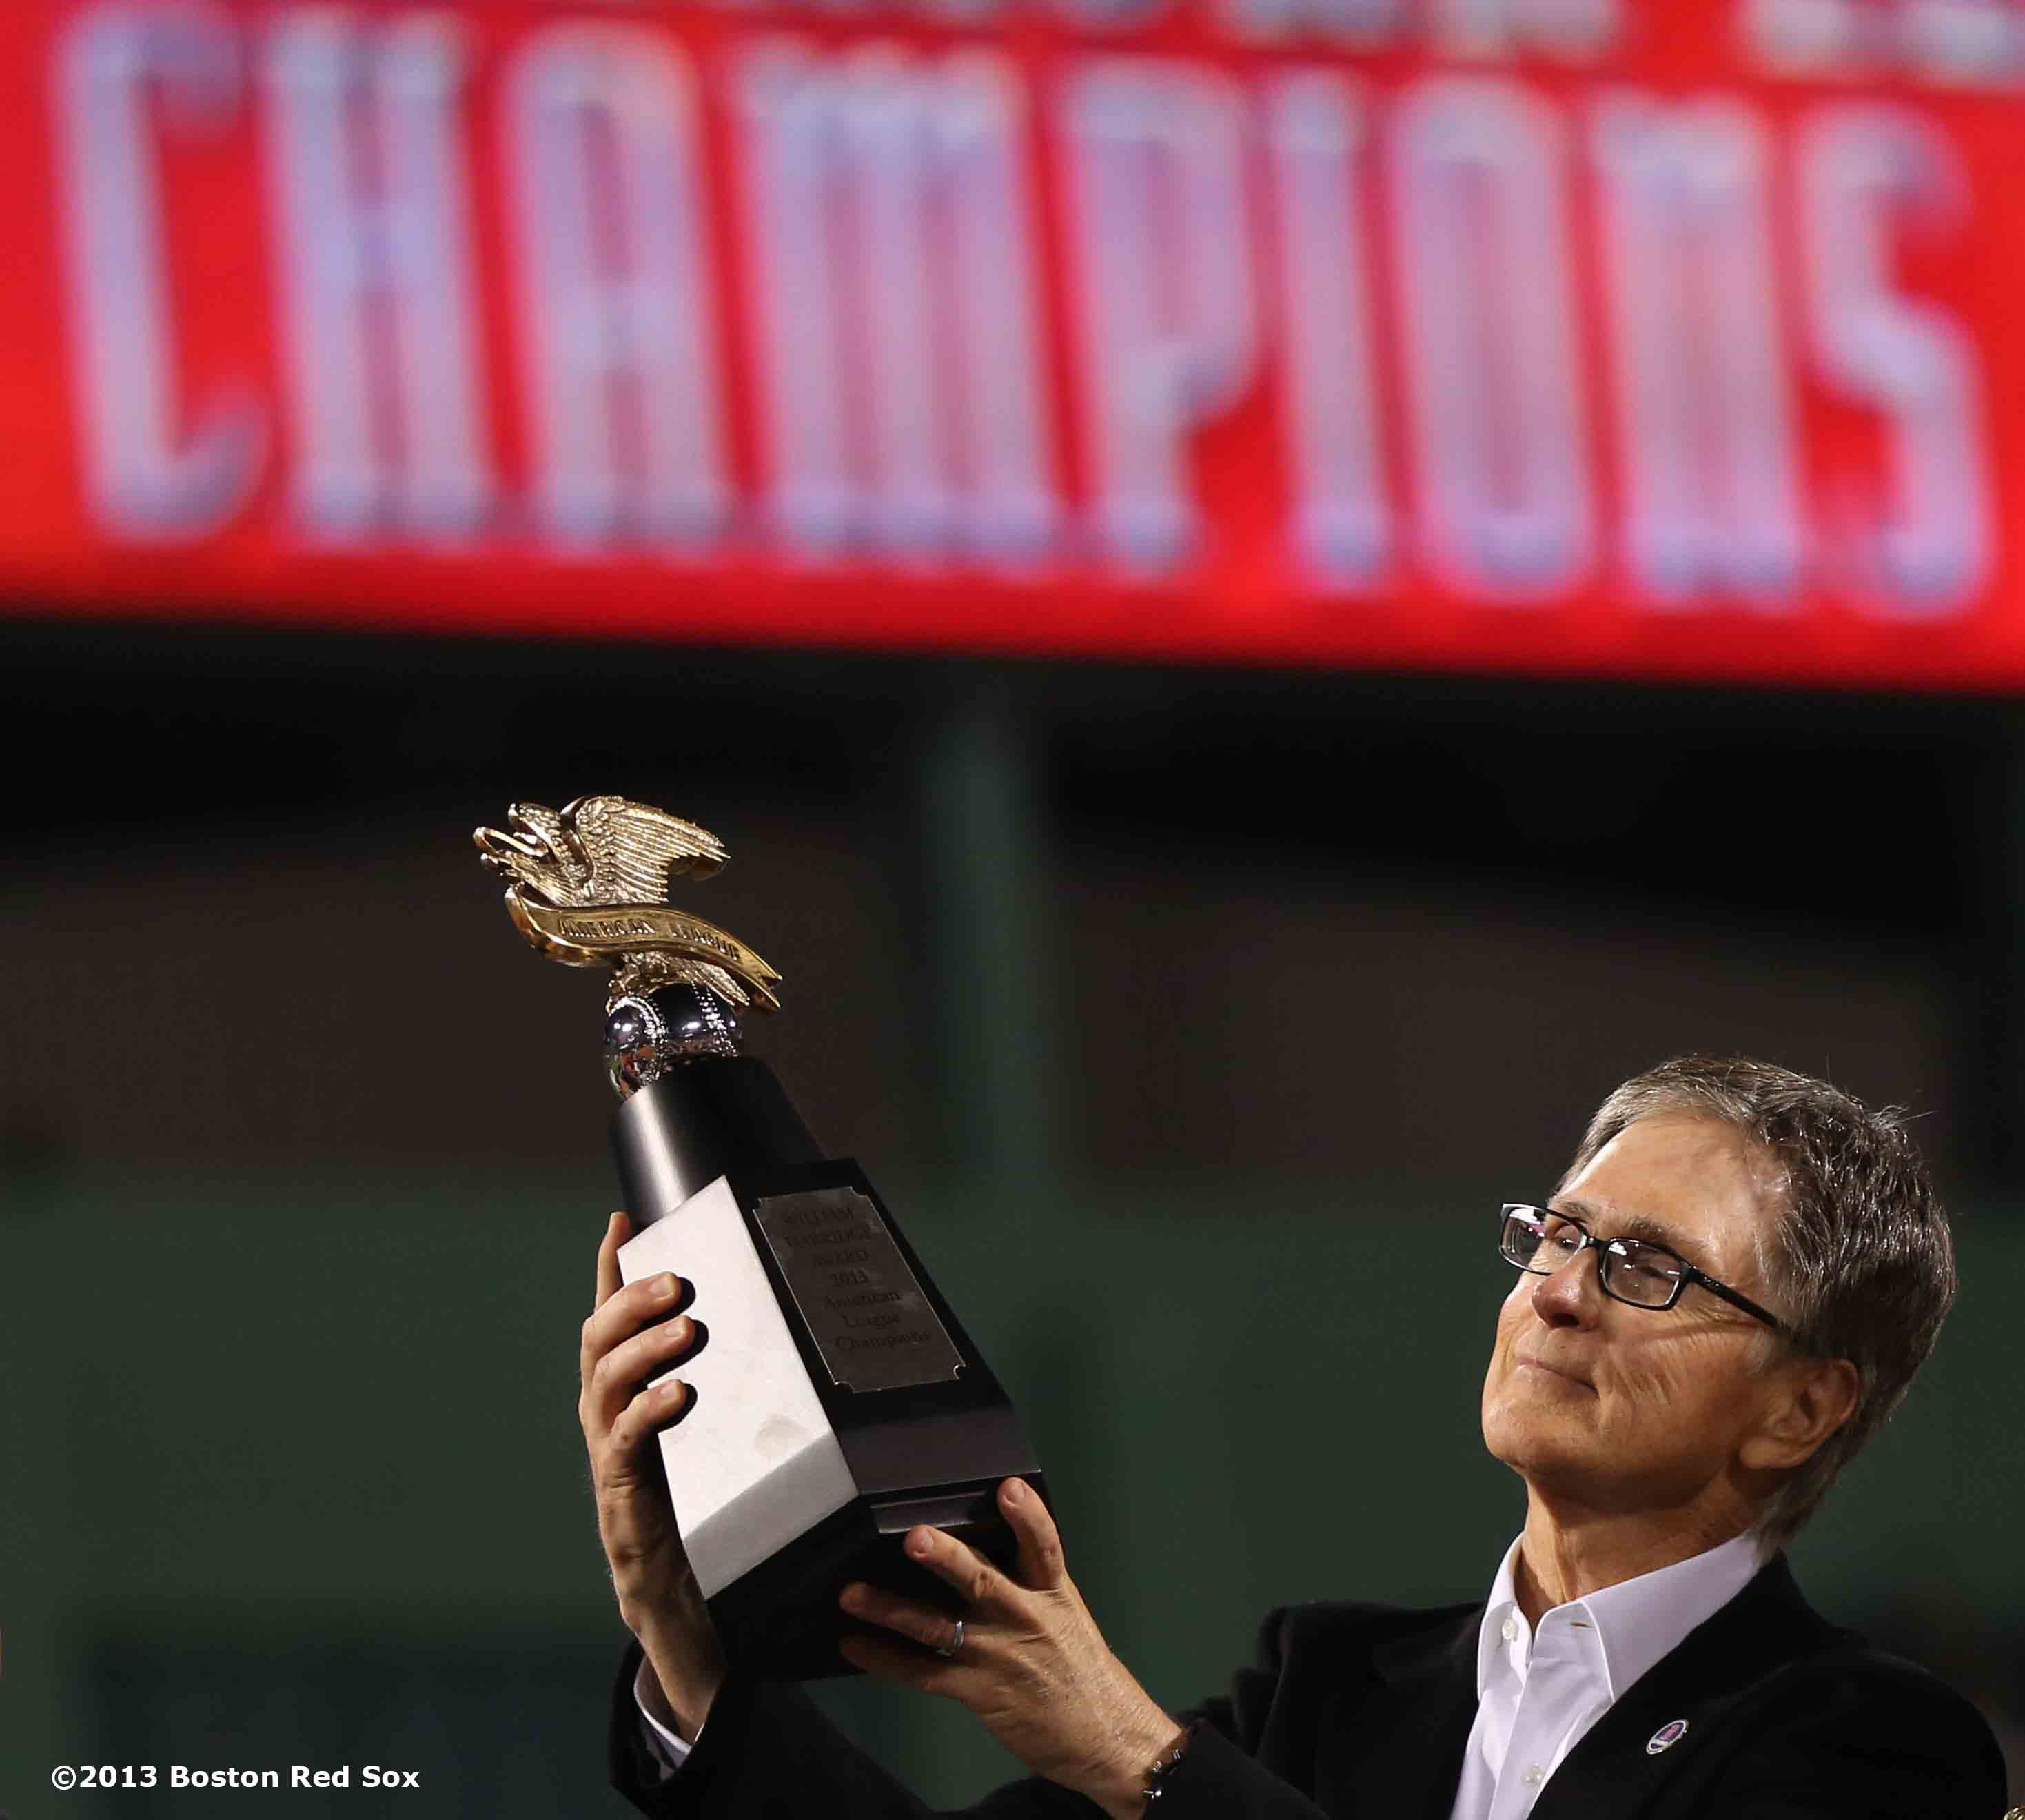 """""""Boston Red Sox Principal Owner John Henry is presented with the League Championship trophy during an on-field celebration after winning game six of the American League Championship Series against the Detroit Tigers and advancing to the World Series Saturday, October 19, 2013 at Fenway Park in Boston, Massachusetts."""""""